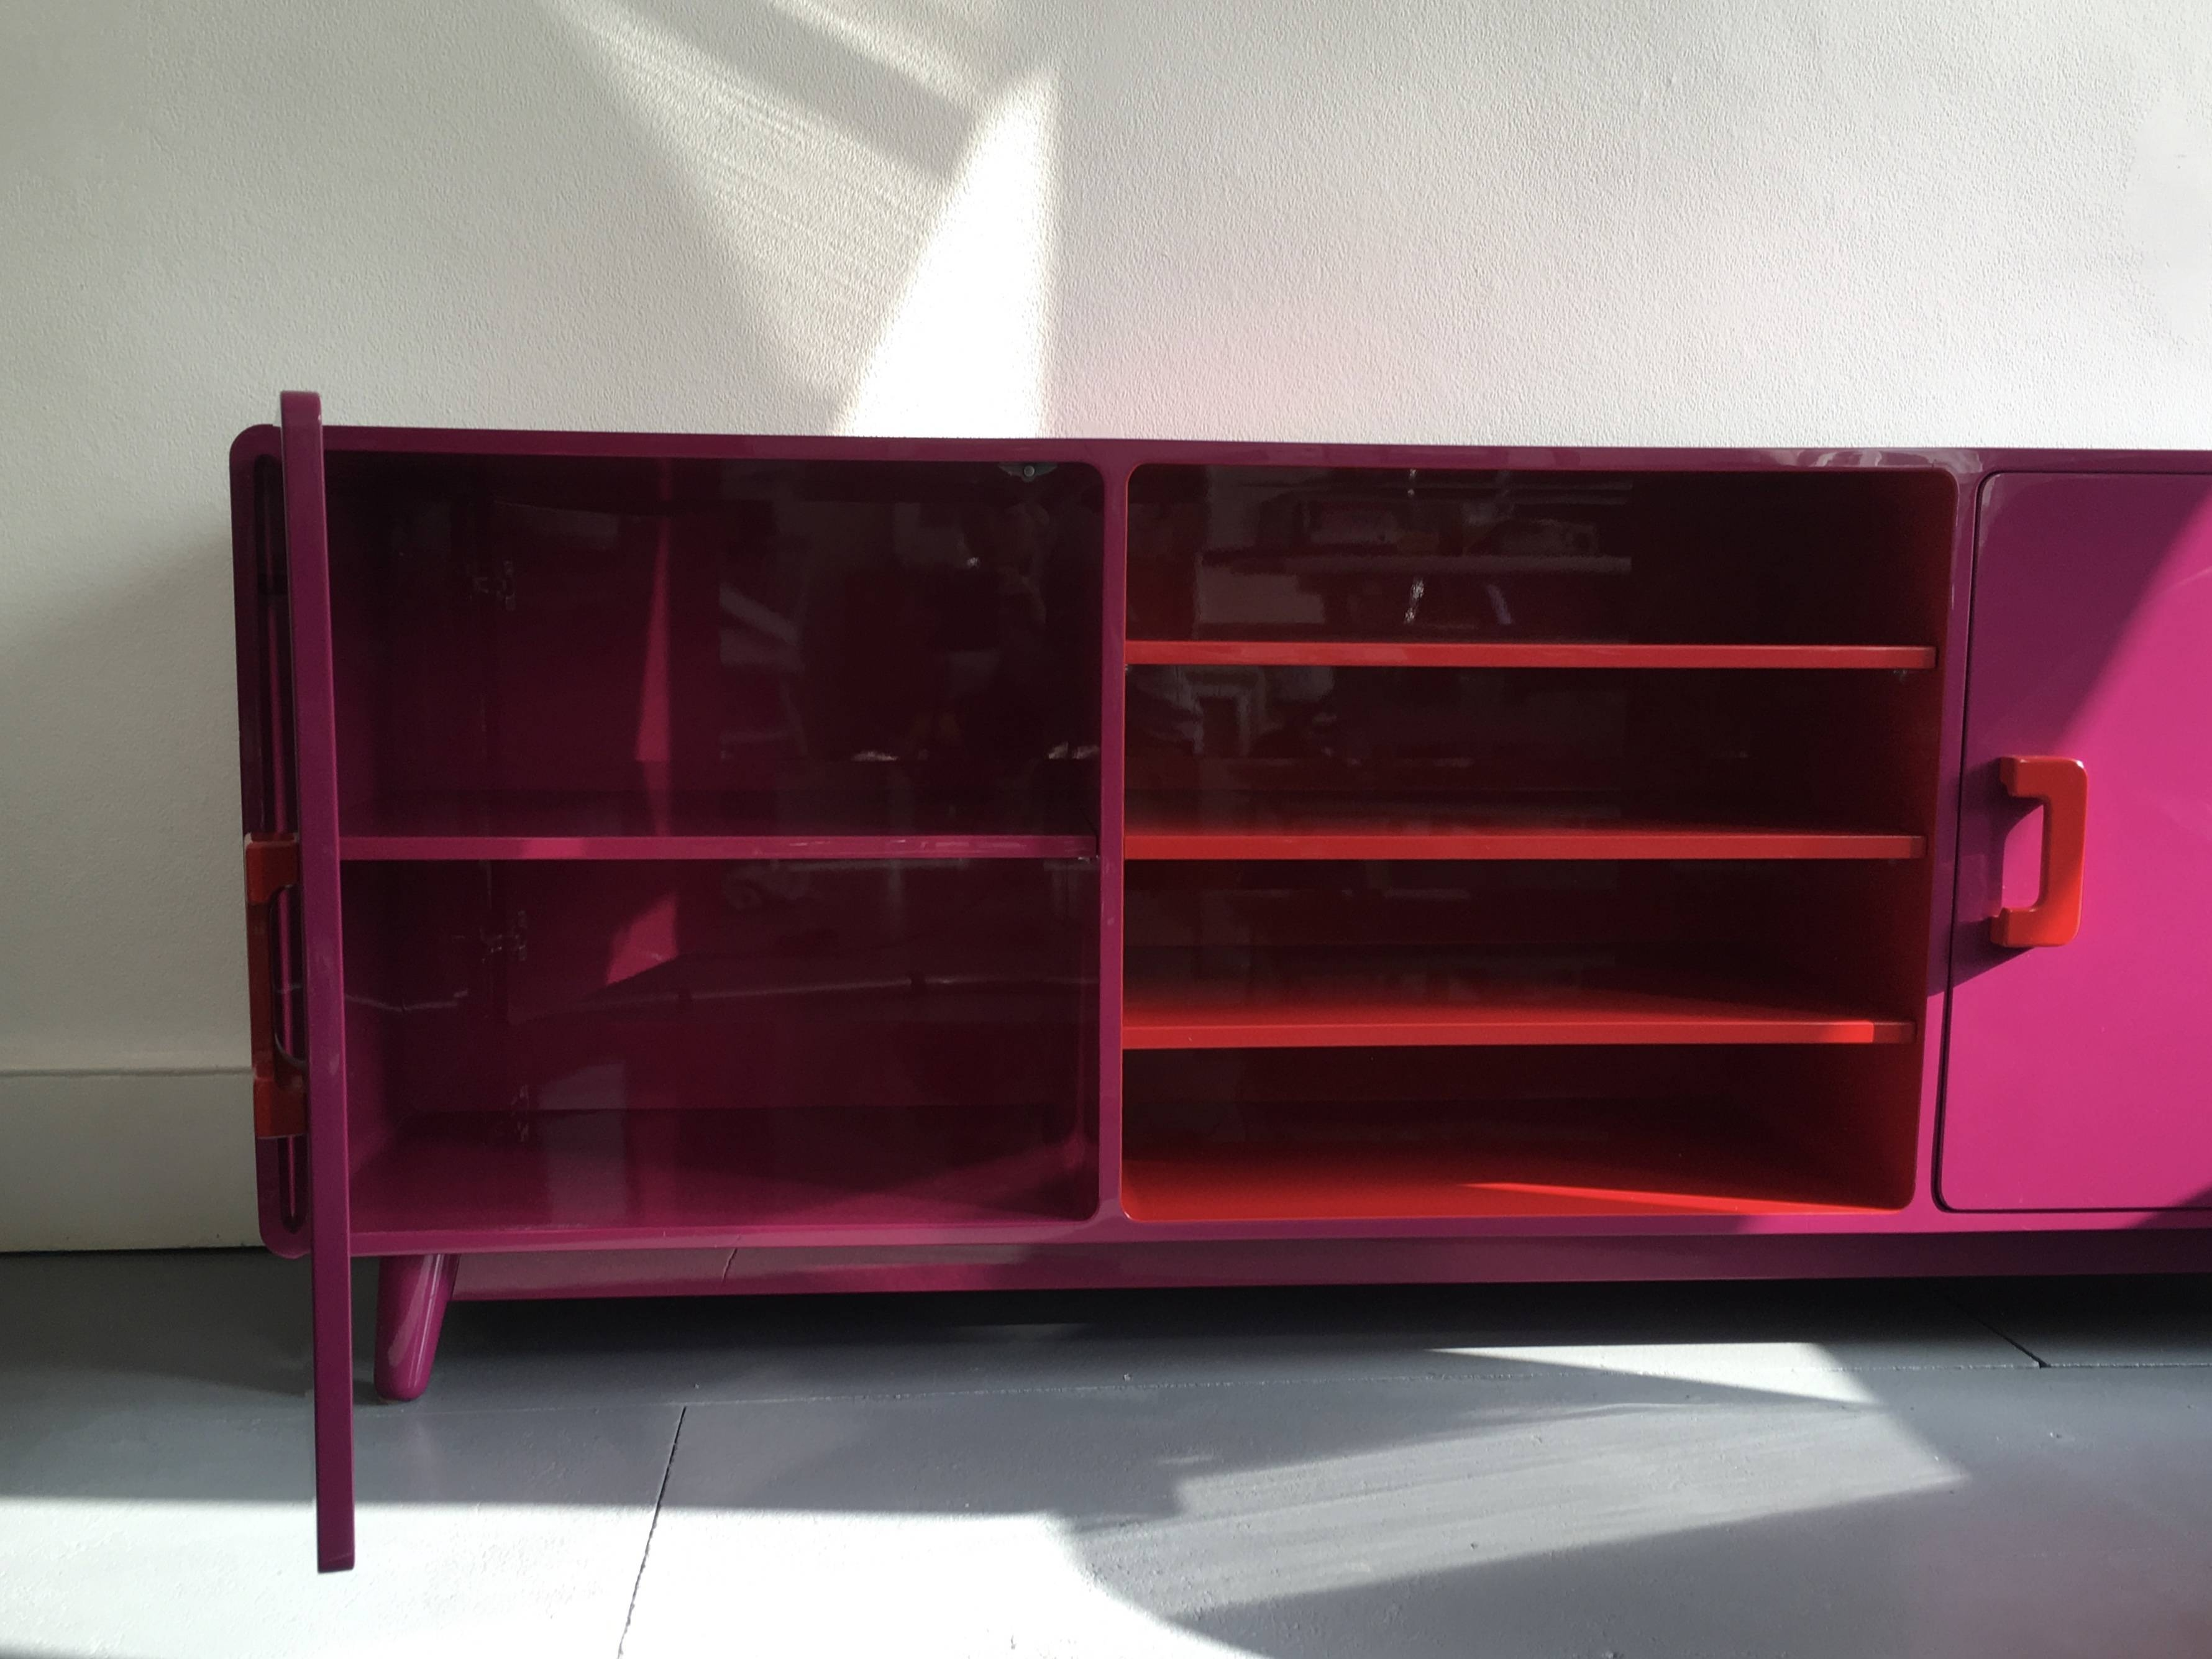 60's Inspired High Gloss Lacquered Sideboard In Hot Pink And Red In Red High Gloss Sideboards (Photo 8 of 30)